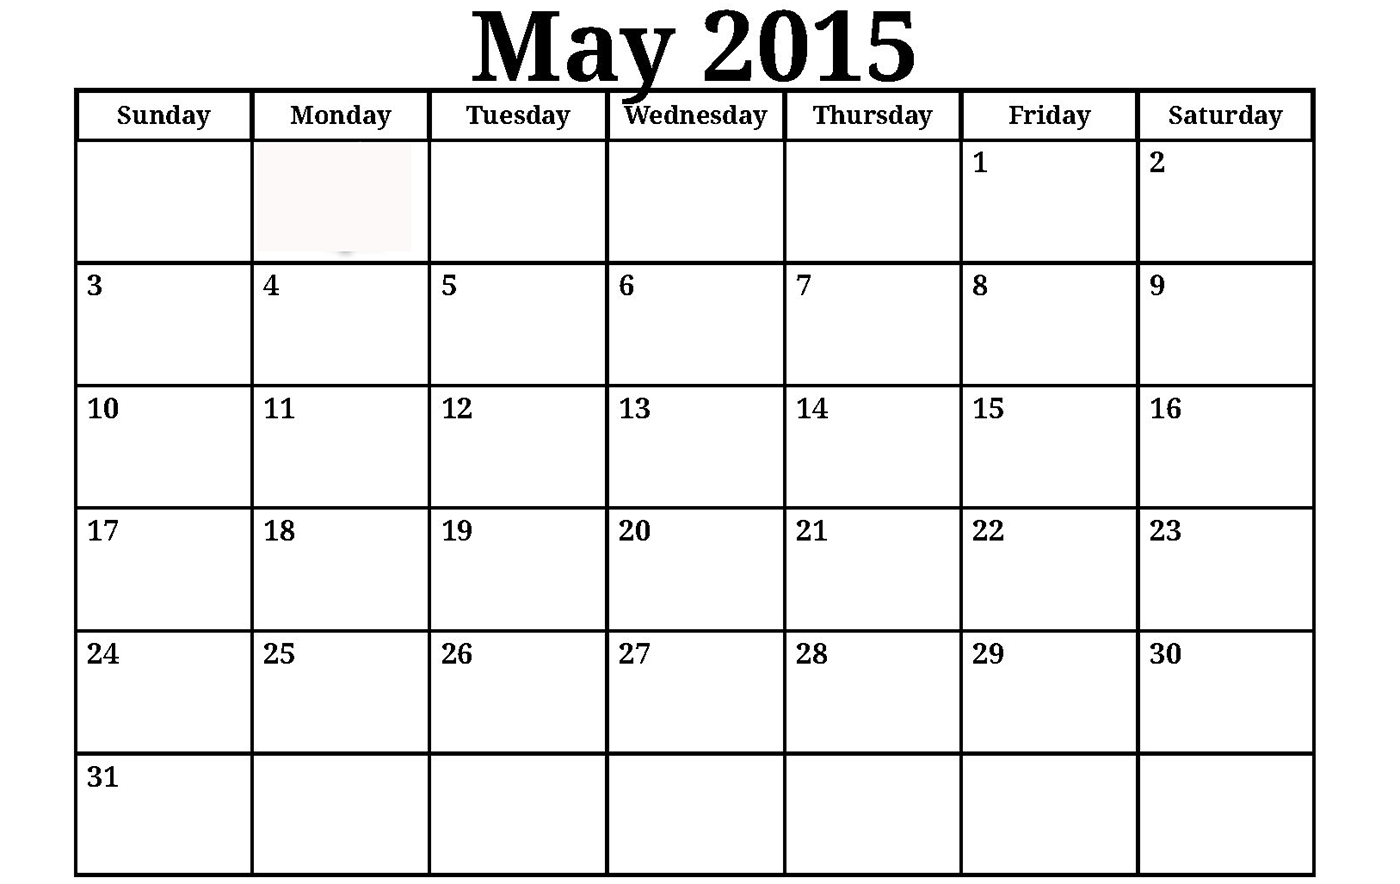 2015 May Calendar Template 3 | Calendar | Pinterest